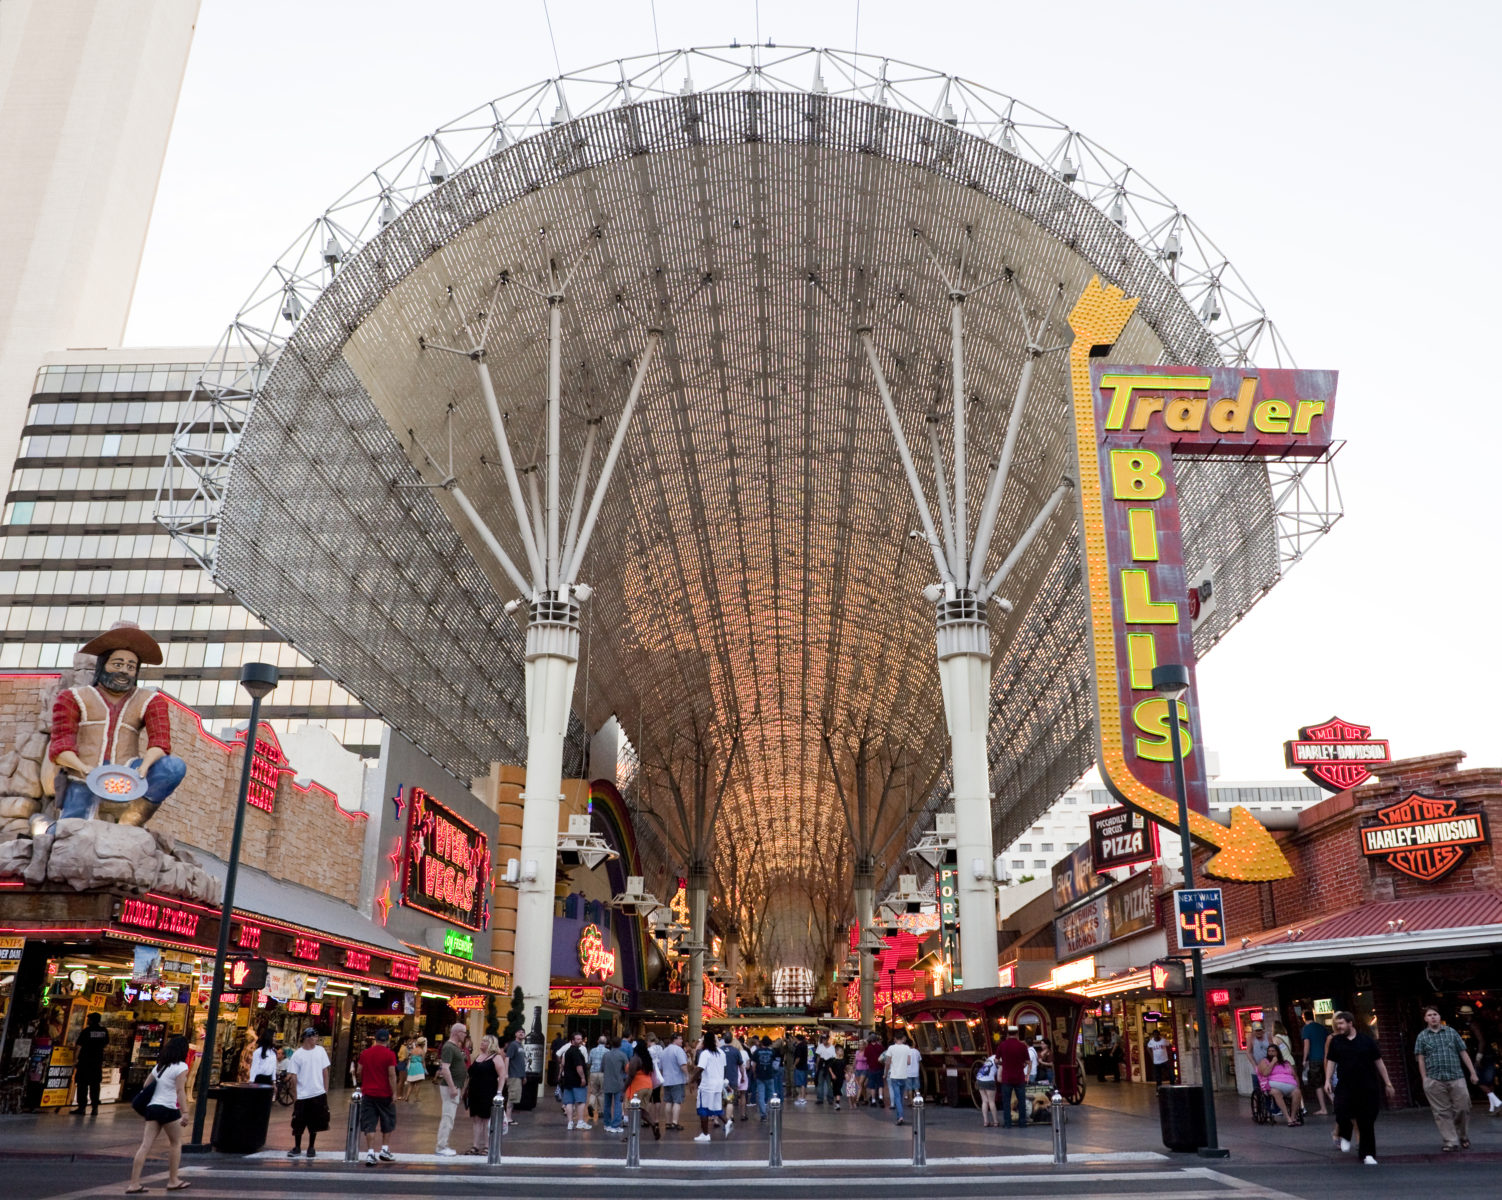 Tourists sight seeing on Fremont Street.